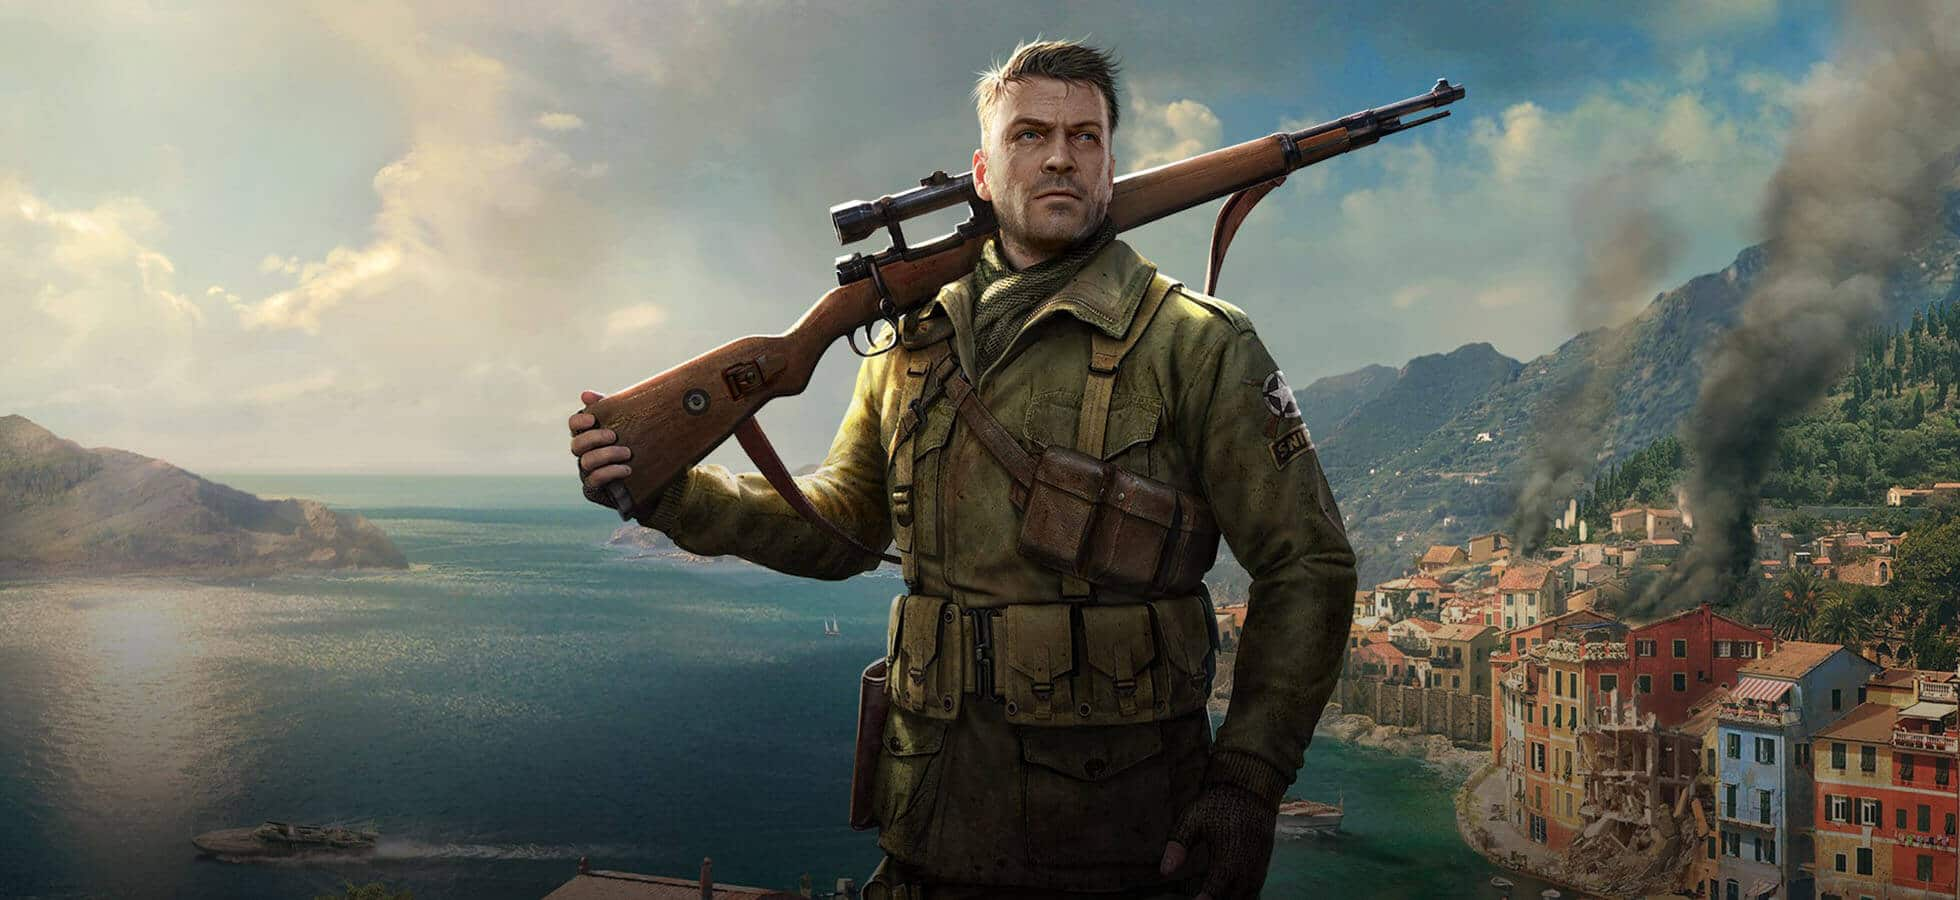 Sniper Elite 4 is a third person shooter